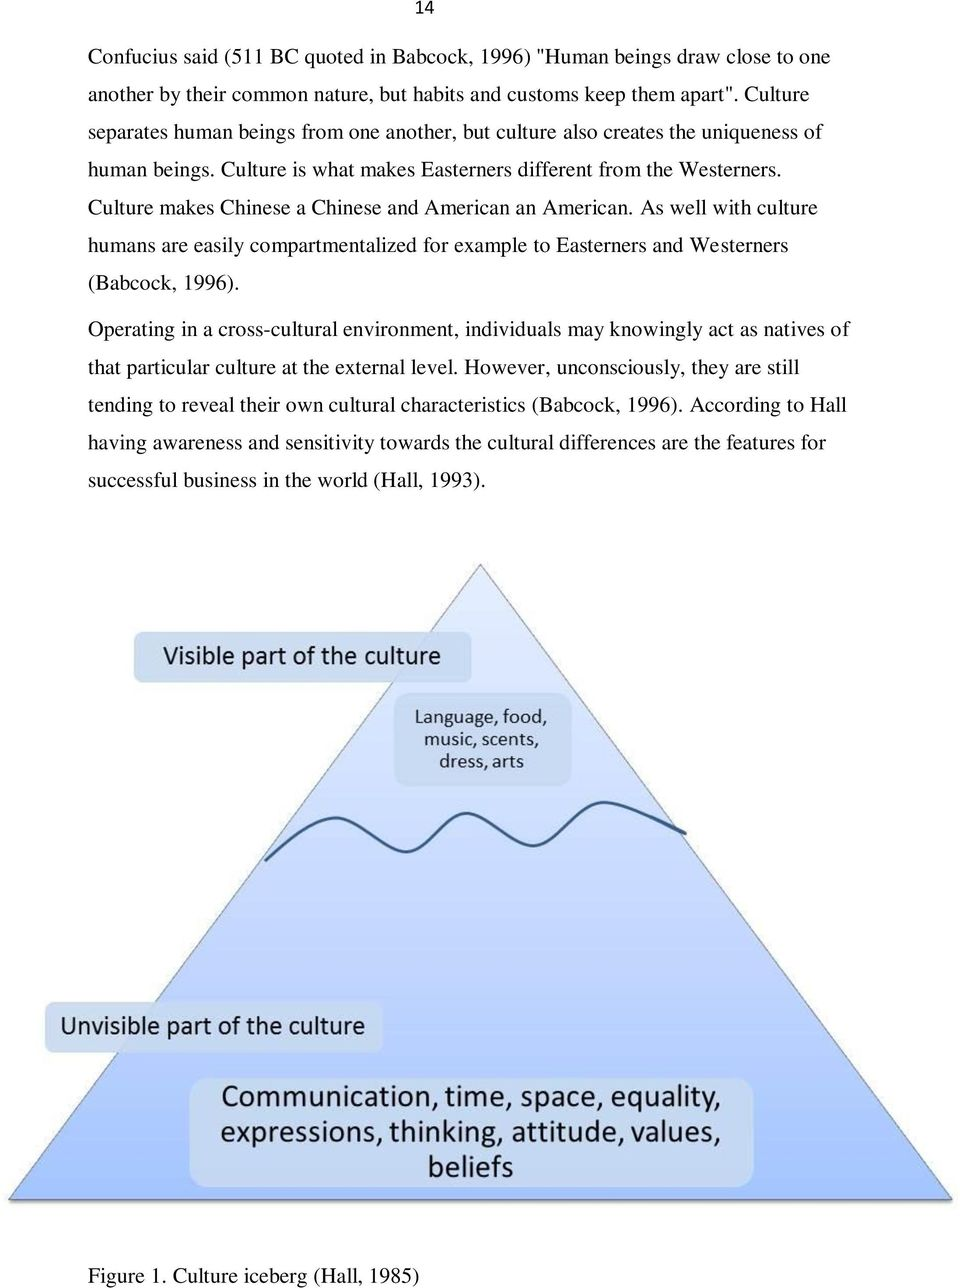 Culture makes Chinese a Chinese and American an American. As well with culture humans are easily compartmentalized for example to Easterners and Westerners (Babcock, 1996).